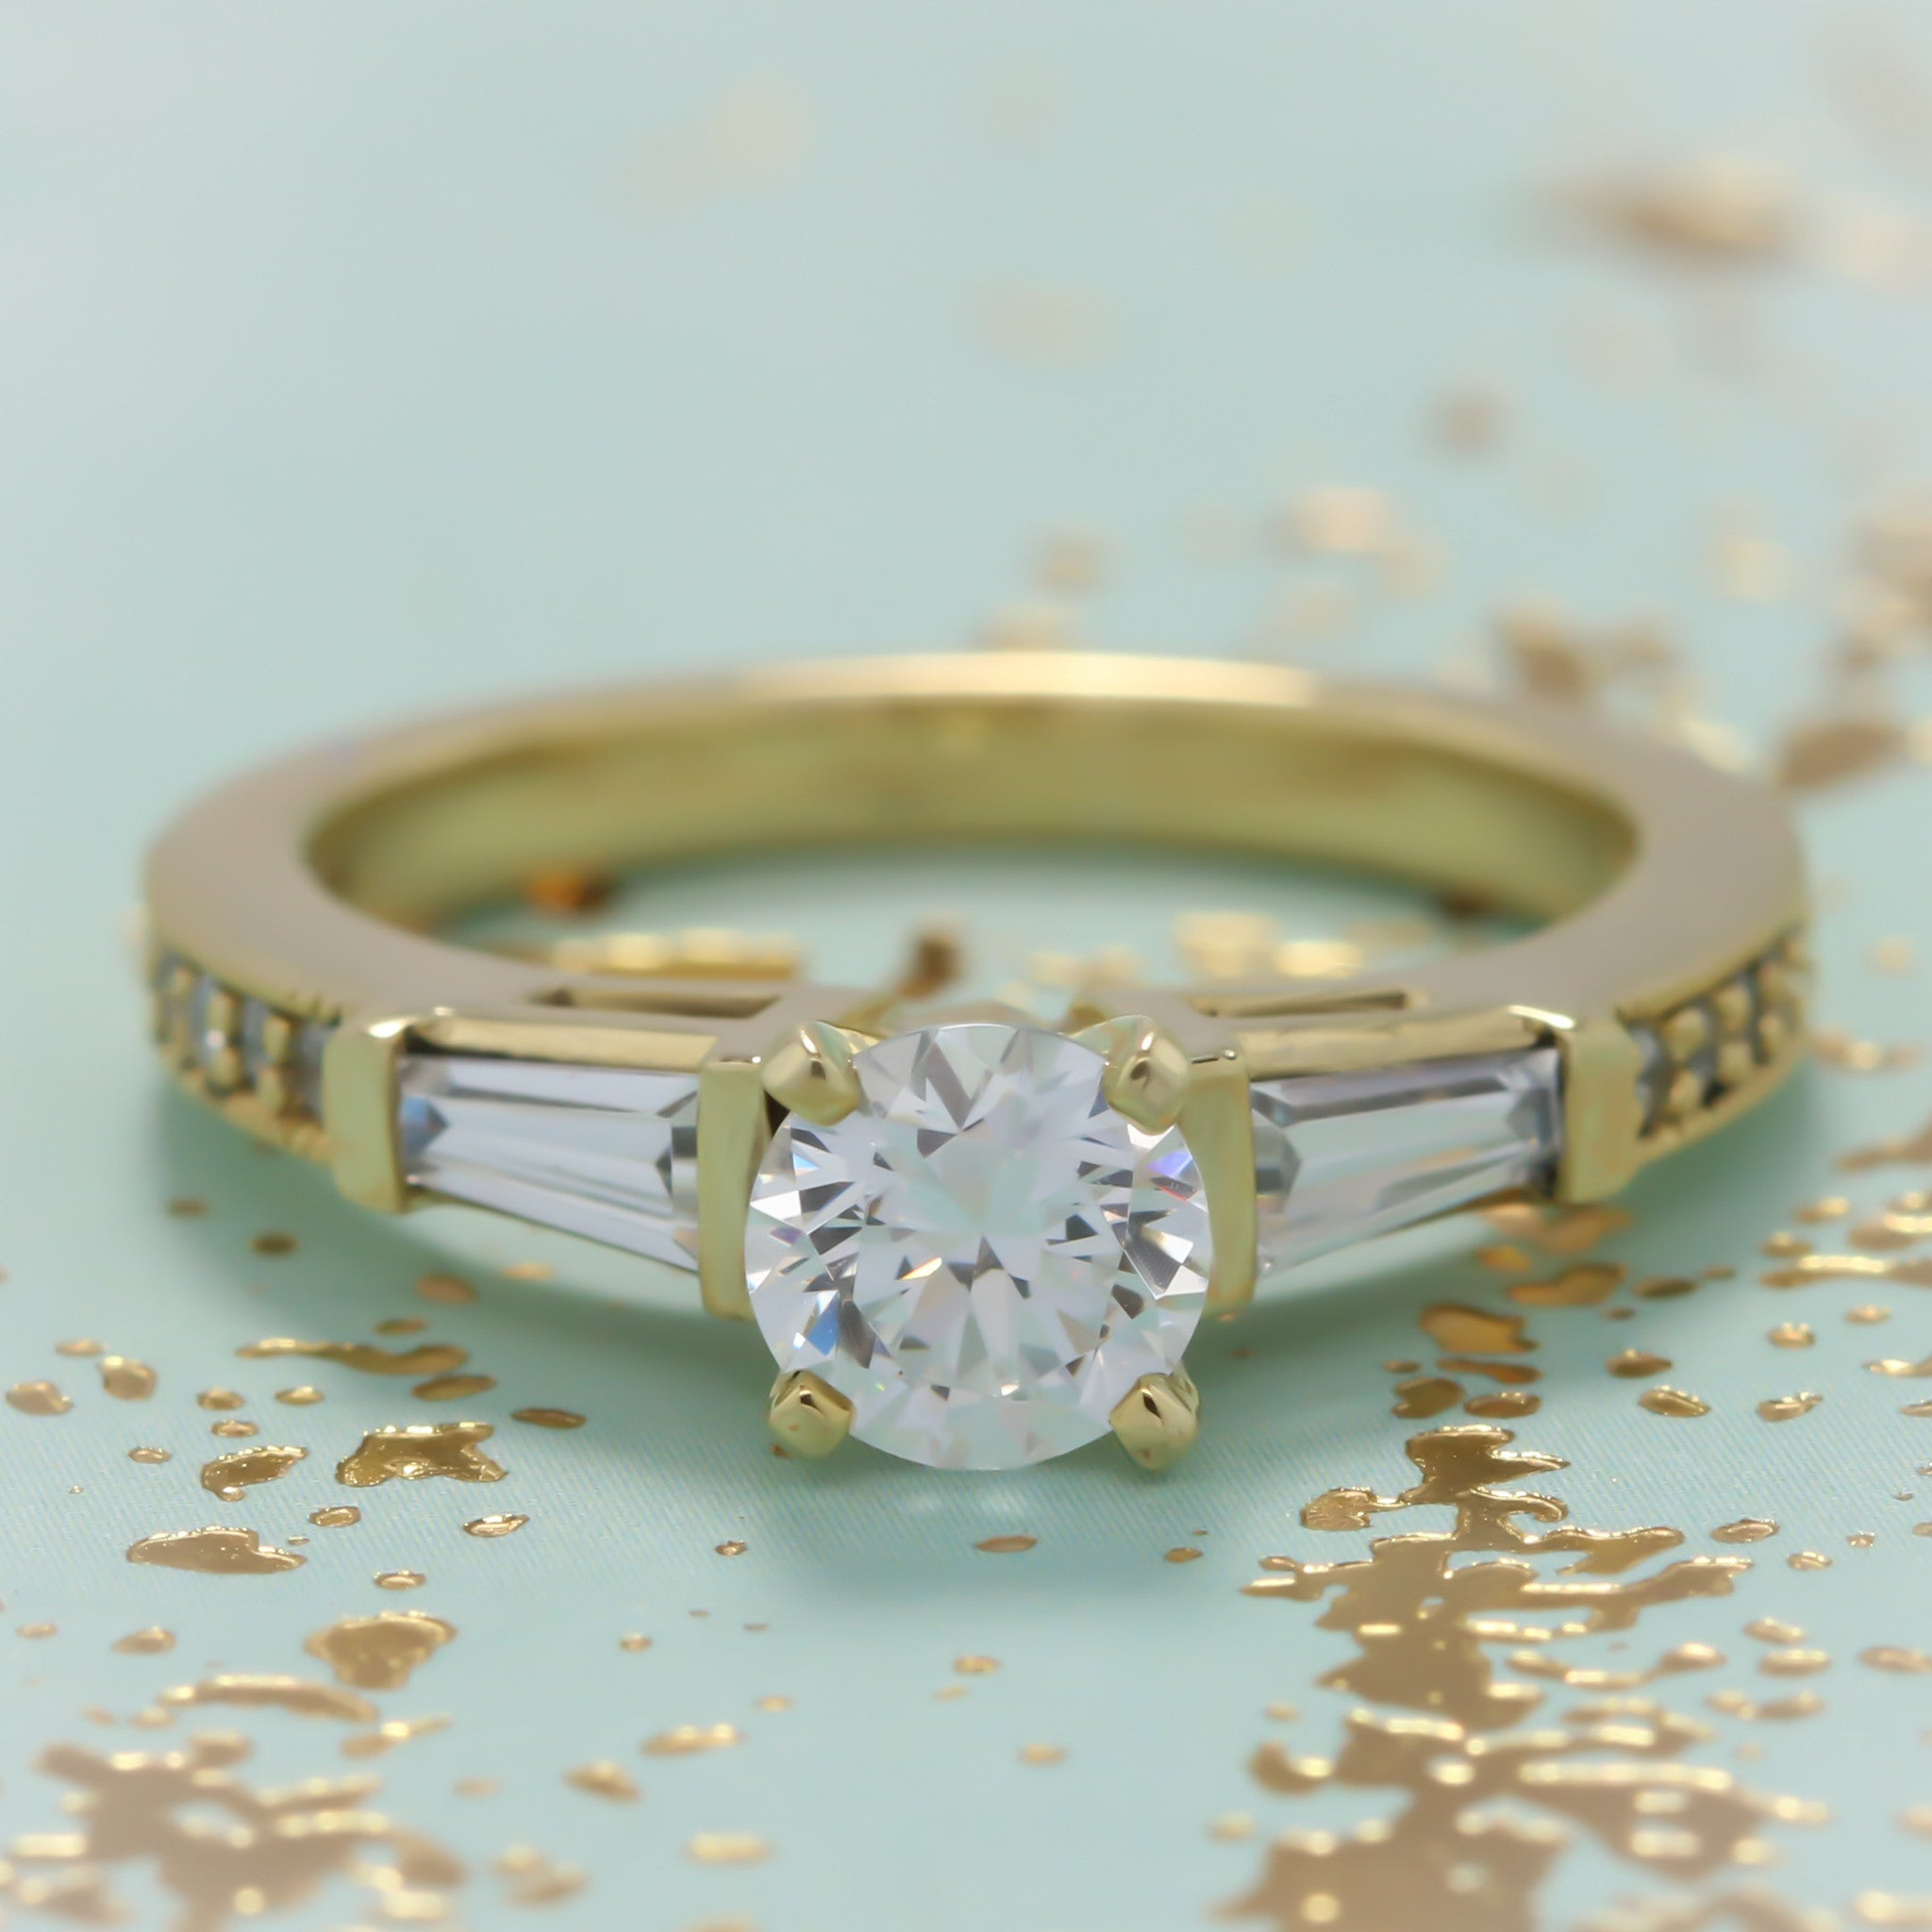 engraved hand chicago fine in closeup delicate important characteristic and diamond is hexagon most trends scale the of metal style styles shape every ring round setting duquet gold rings today engagement evanston a christopher jewelry vintage color unifying single